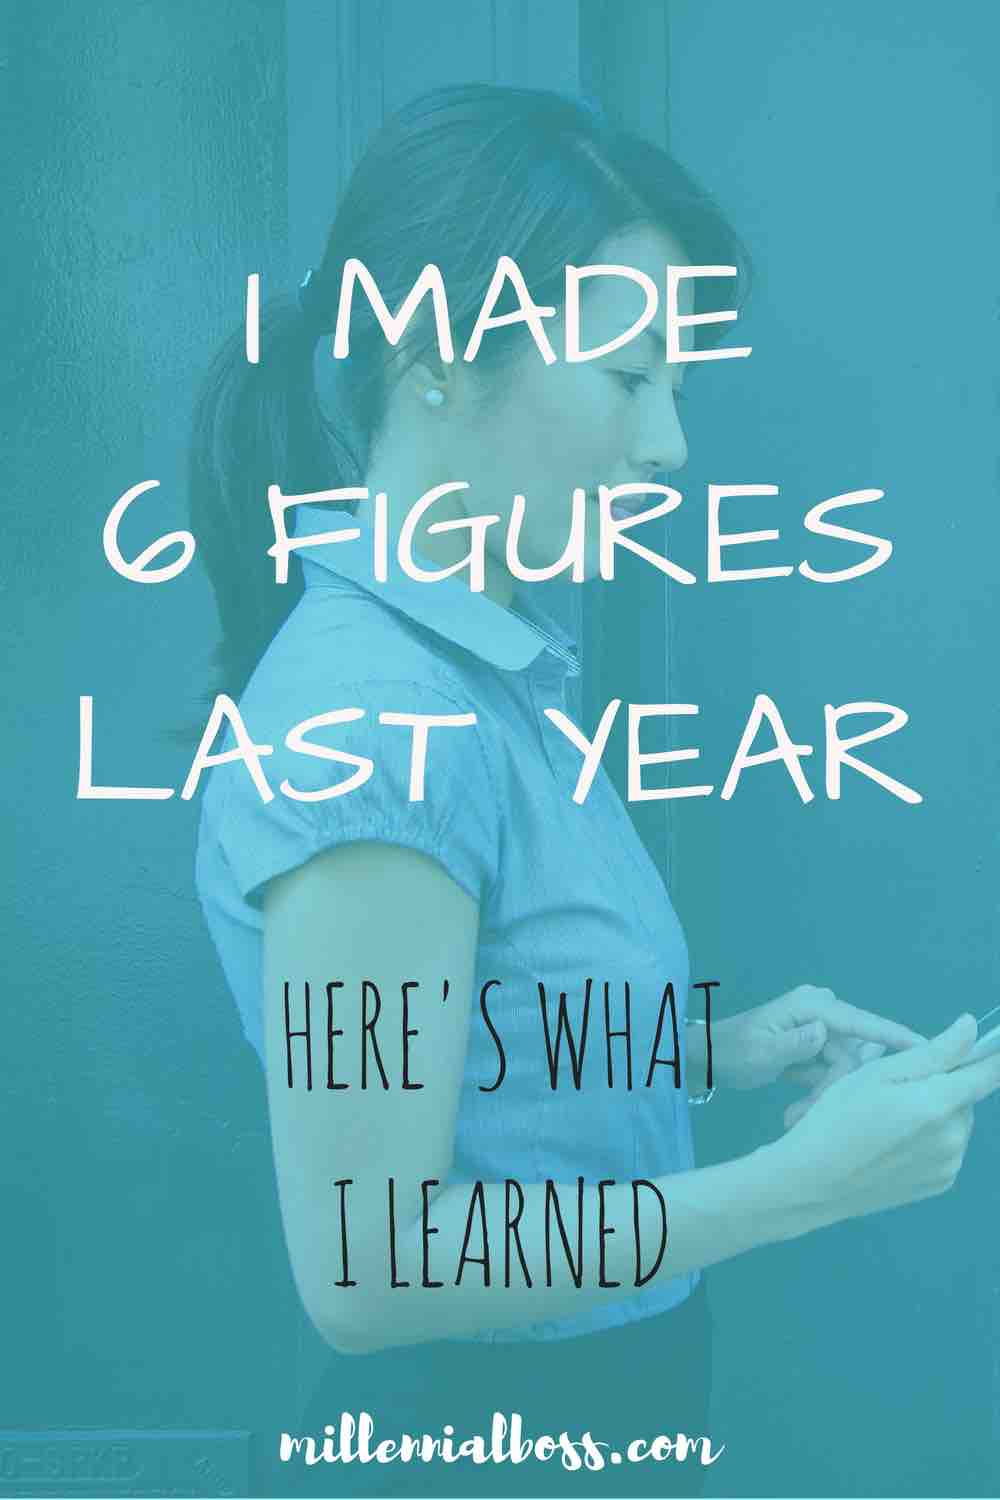 So glad I read this post! I'm hoping to make six figures next year!